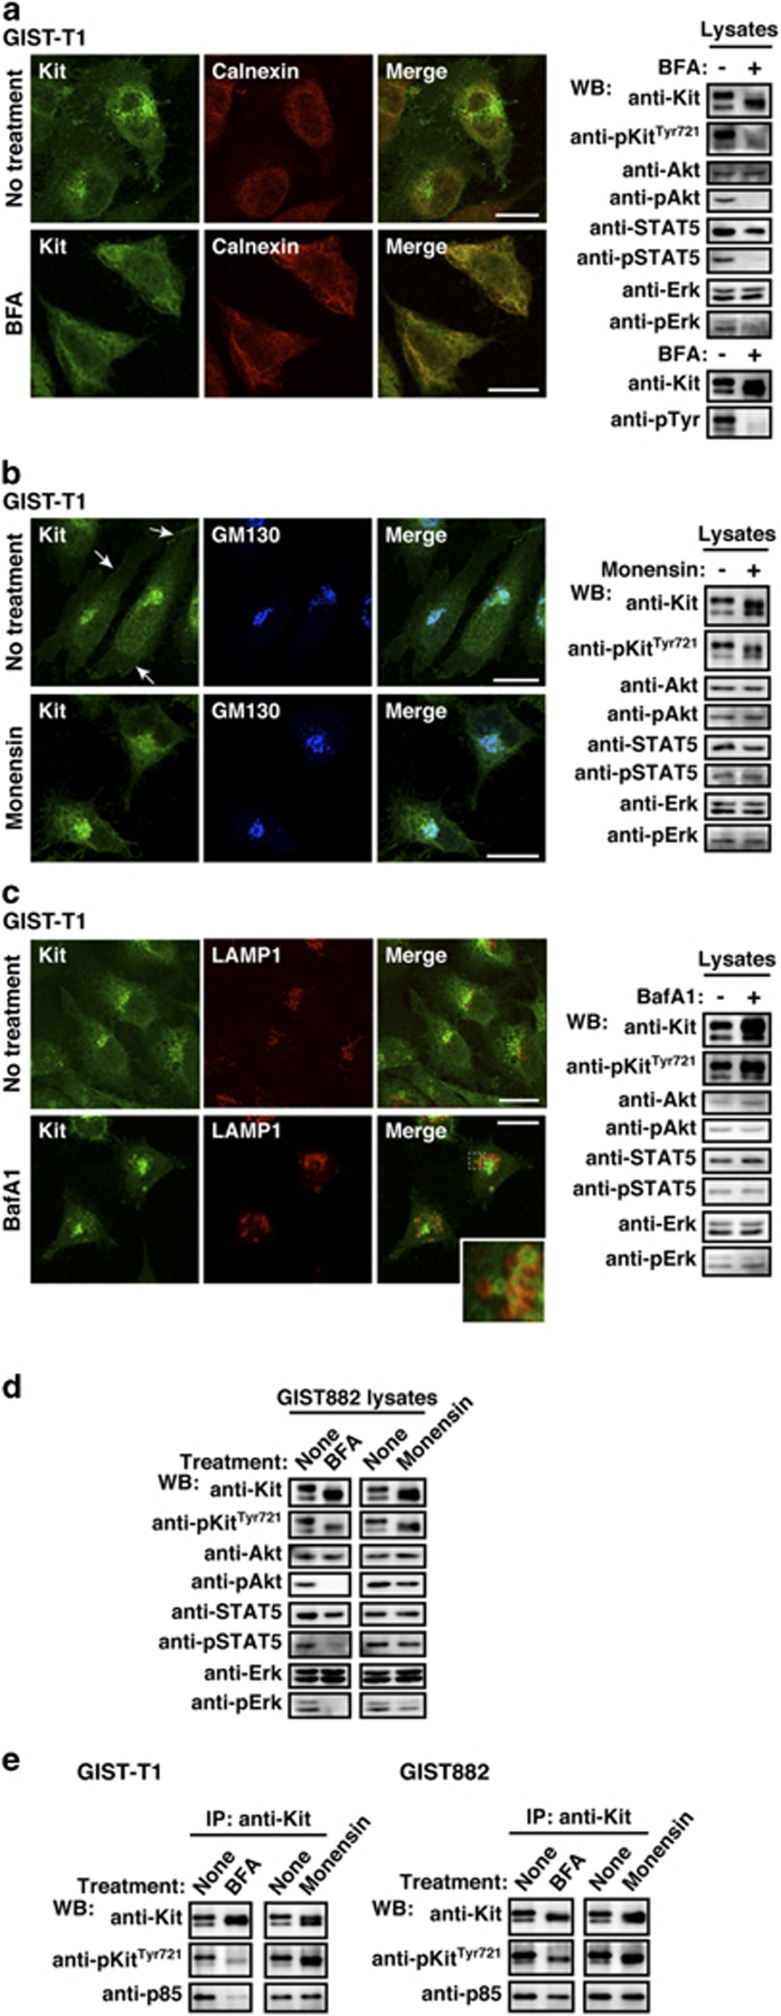 Kit(mut) on the Golgi signals and activates the PI3K-Akt pathway, STAT5, and Erk. ( a – c ) GIST-T1 cells were treated with ( a ) 1 μ M BFA (brefeldin A; blocks ER export to the Golgi) for 16 h, ( b ) 250 n M monensin (blocks Golgi export) for 24 h, or ( c ) 100 n M bafilomycin A1 (BafA1; blocks endo/lysosomal trafficking) for 24 h. Cells were stained with anti-Kit (green) in conjunction with anti-calnexin (ER marker, red), anti-GM130 (Golgi marker, blue), or anti-LAMP1 (endo/lysosome marker, red). Arrows indicate the PM region. An inset shows a magnified image of the boxed area. Bars, 20 μm. Immunoblots are shown. Phosphorylated proteins are presented as pKit, pAkt, pSTAT5, and pErk. ( d ) GIST882 cells were treated with 1 μ M BFA for 16 h or 250 n M monensin for 24 h. Lysates were immunoblotted. ( e ) GIST-T1 and GIST882 were treated with 1 μ M BFA for 16 h or 250 n M monensin for 24 h. Anti-Kit immunoprecipitates were immunoblotted.